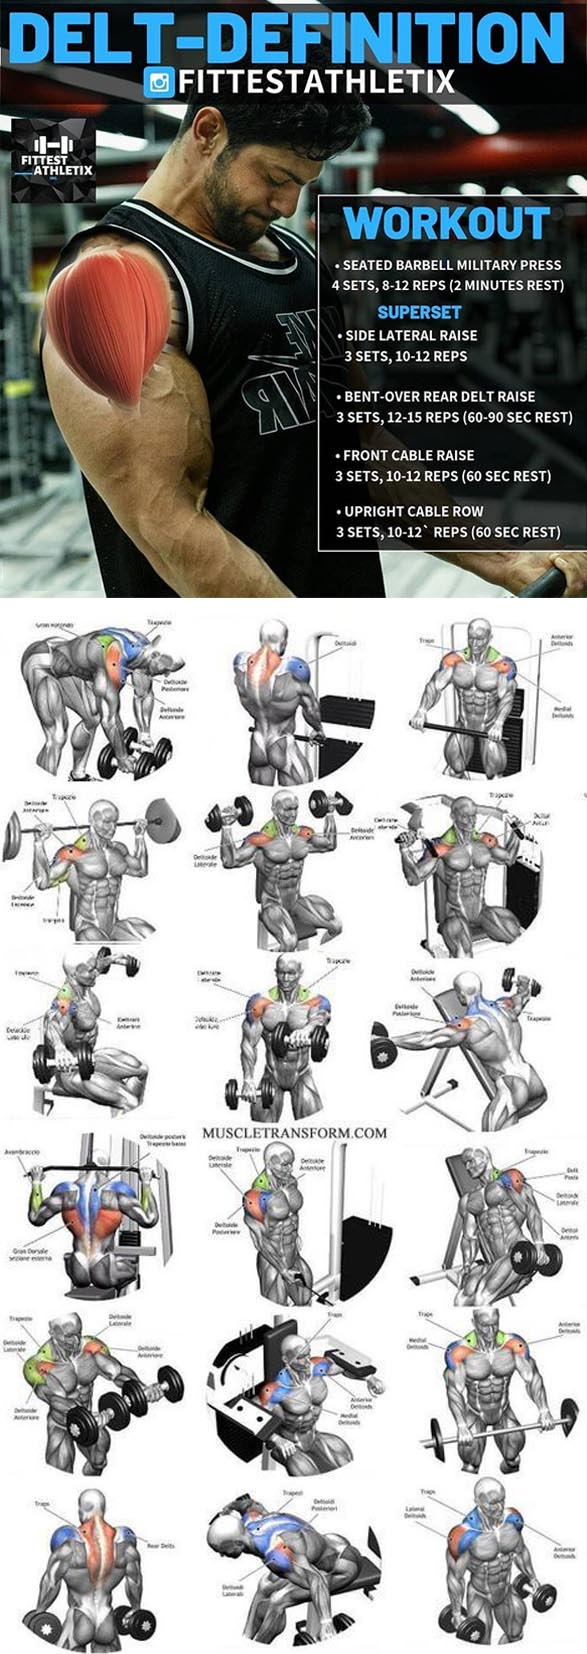 The Delts Workout